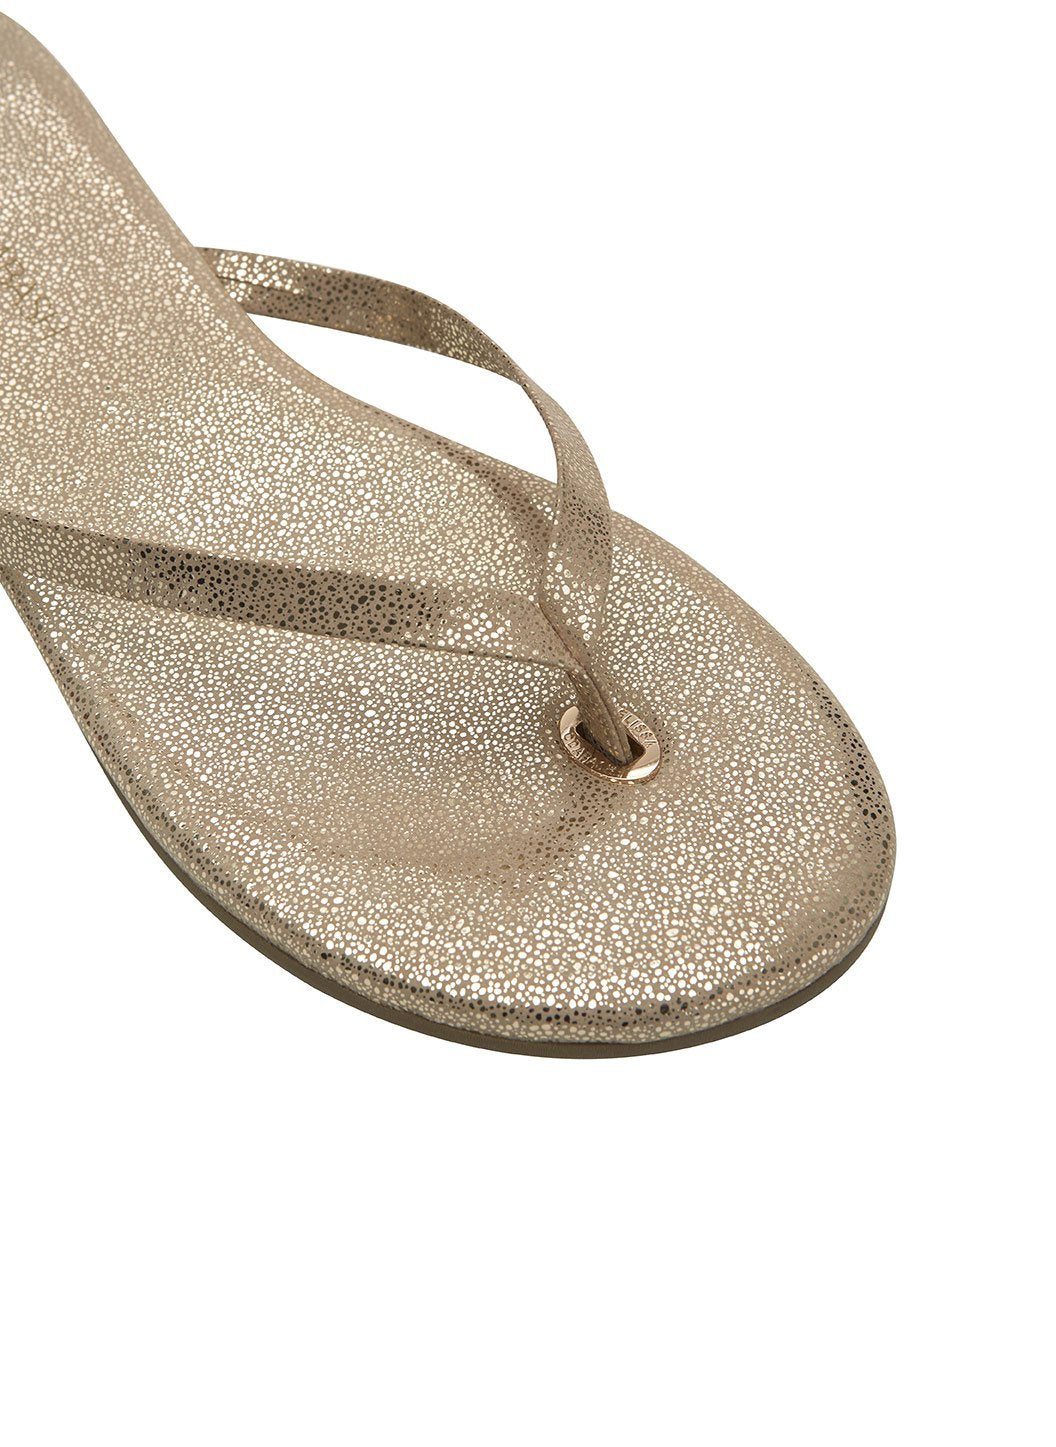 flip flop leather gold_sparkle 2019 3